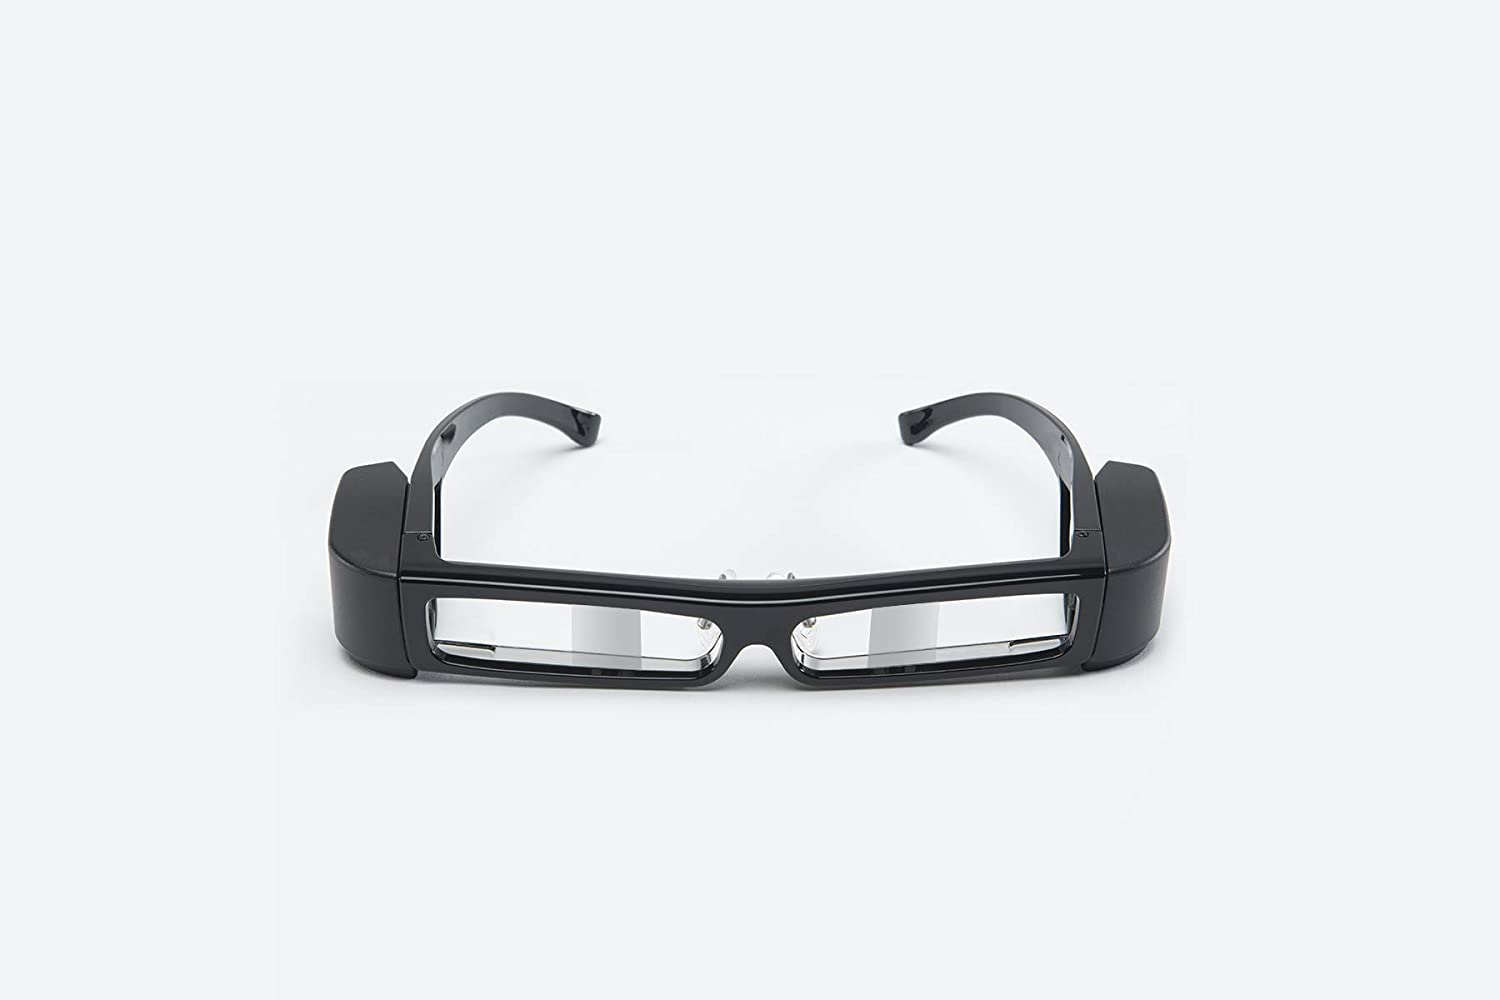 Epson Moverio BT-30C Smart Glasses with USB Type-C 1 and OLED Display